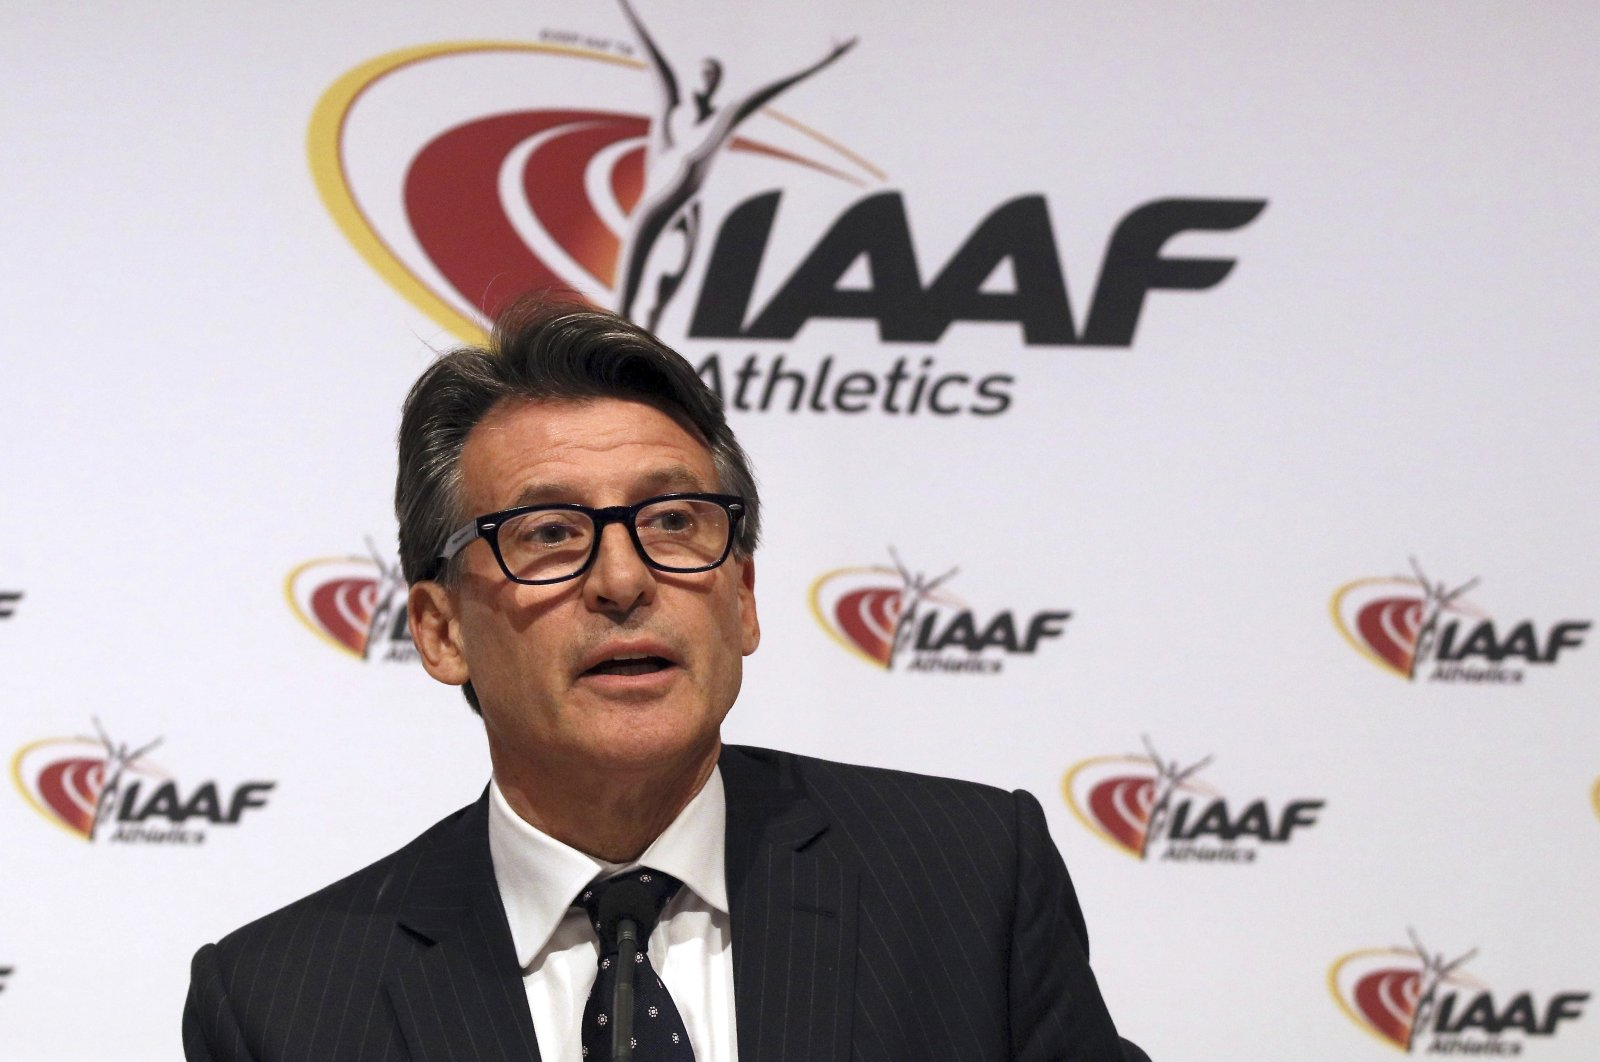 Sebastian Coe speaks during a news conference after a meeting of the International Association Athletics Federations (IAAF) Council at the Grand Hotel in Vienna, Austria, June 17, 2016. (AP Photo)